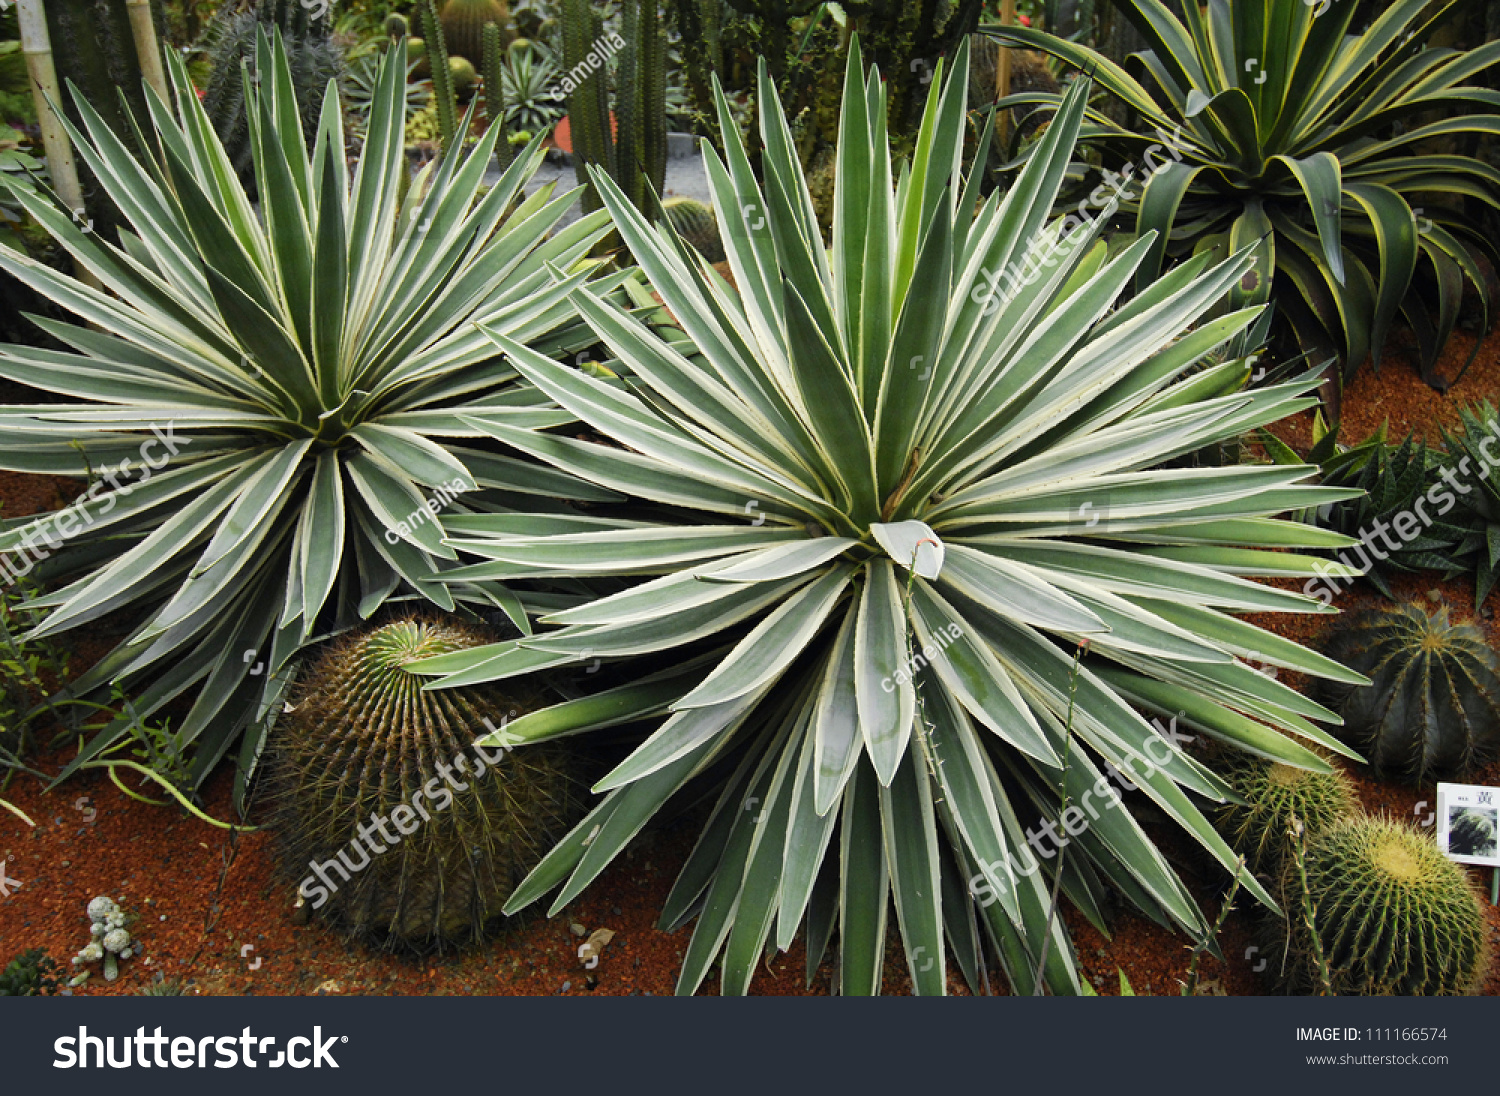 tropical yucca plants stock photo 111166574 shutterstock. Black Bedroom Furniture Sets. Home Design Ideas